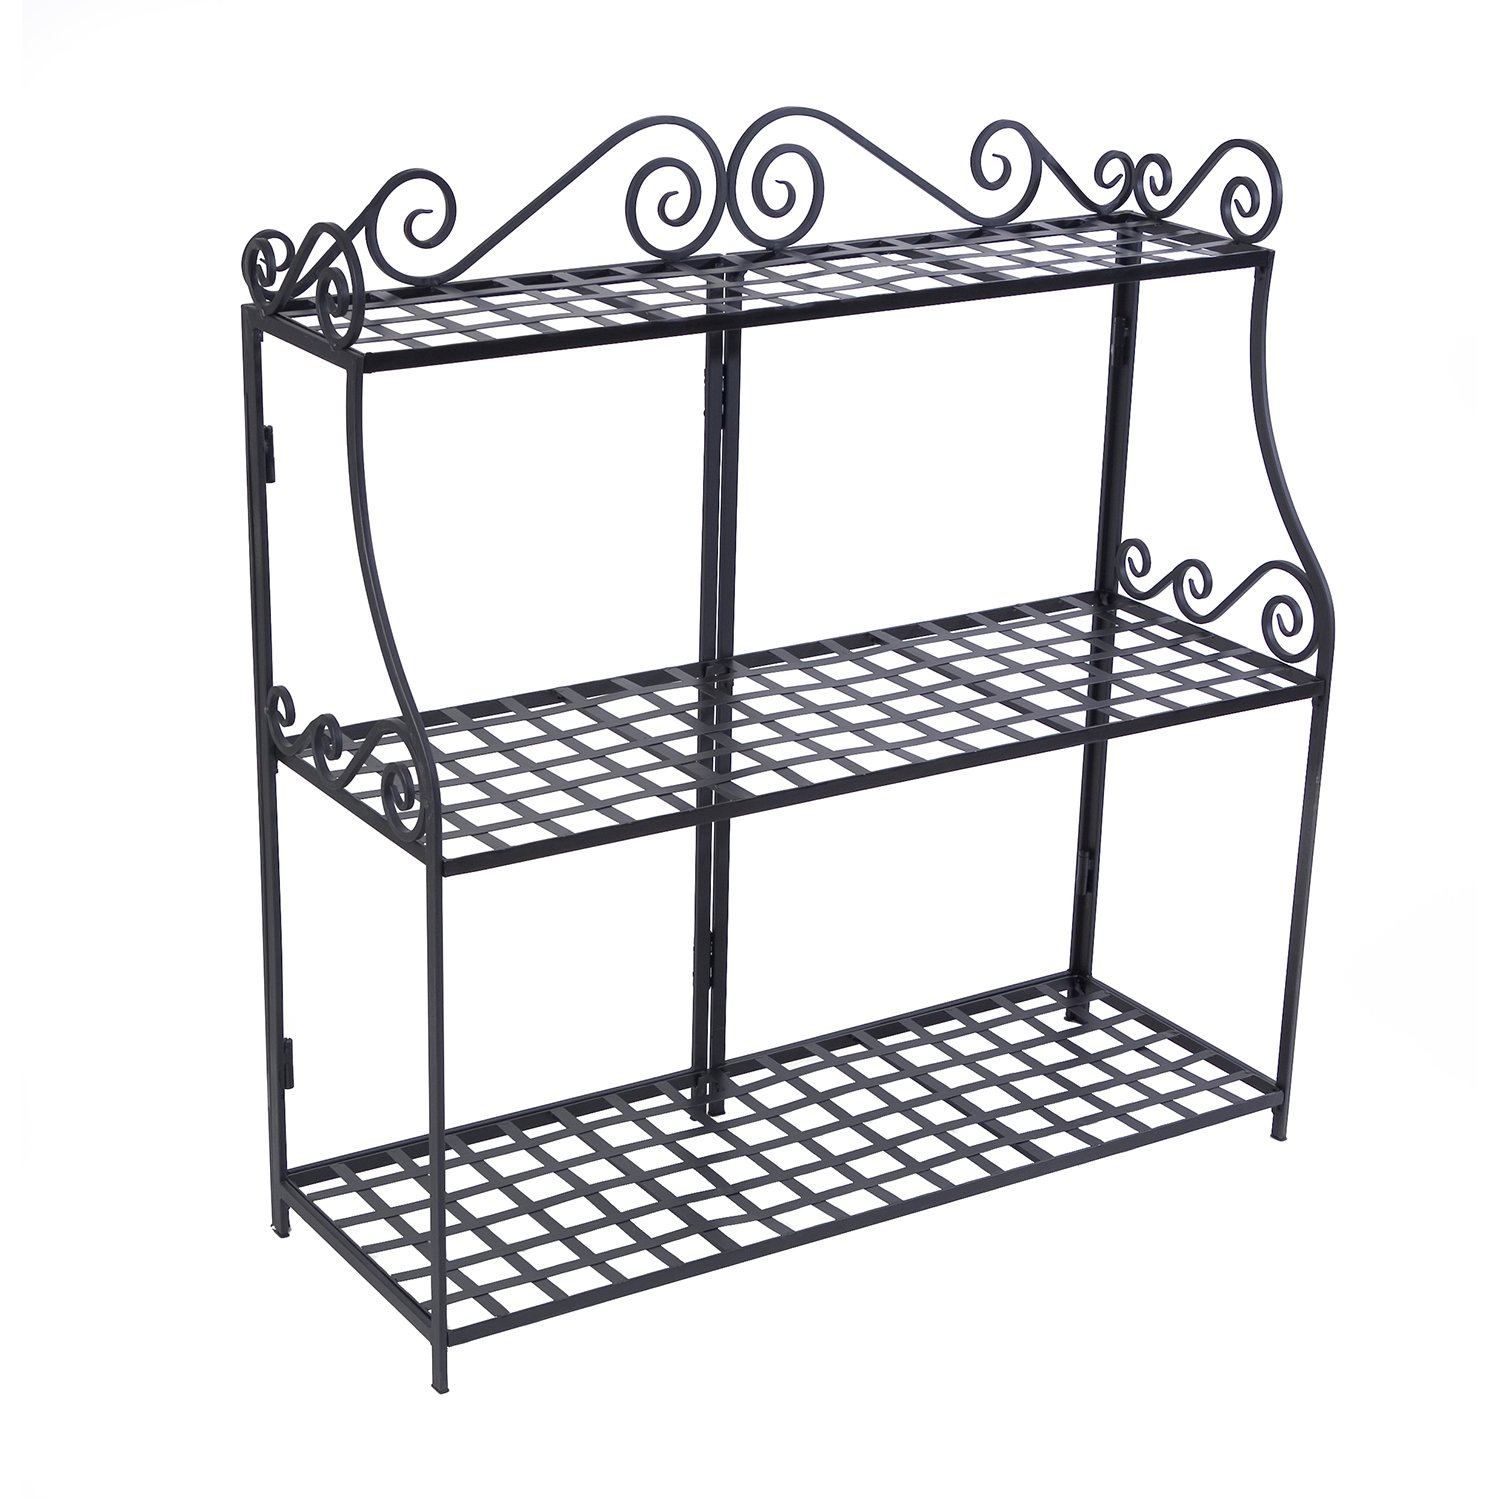 Panacea Products Plant Stand